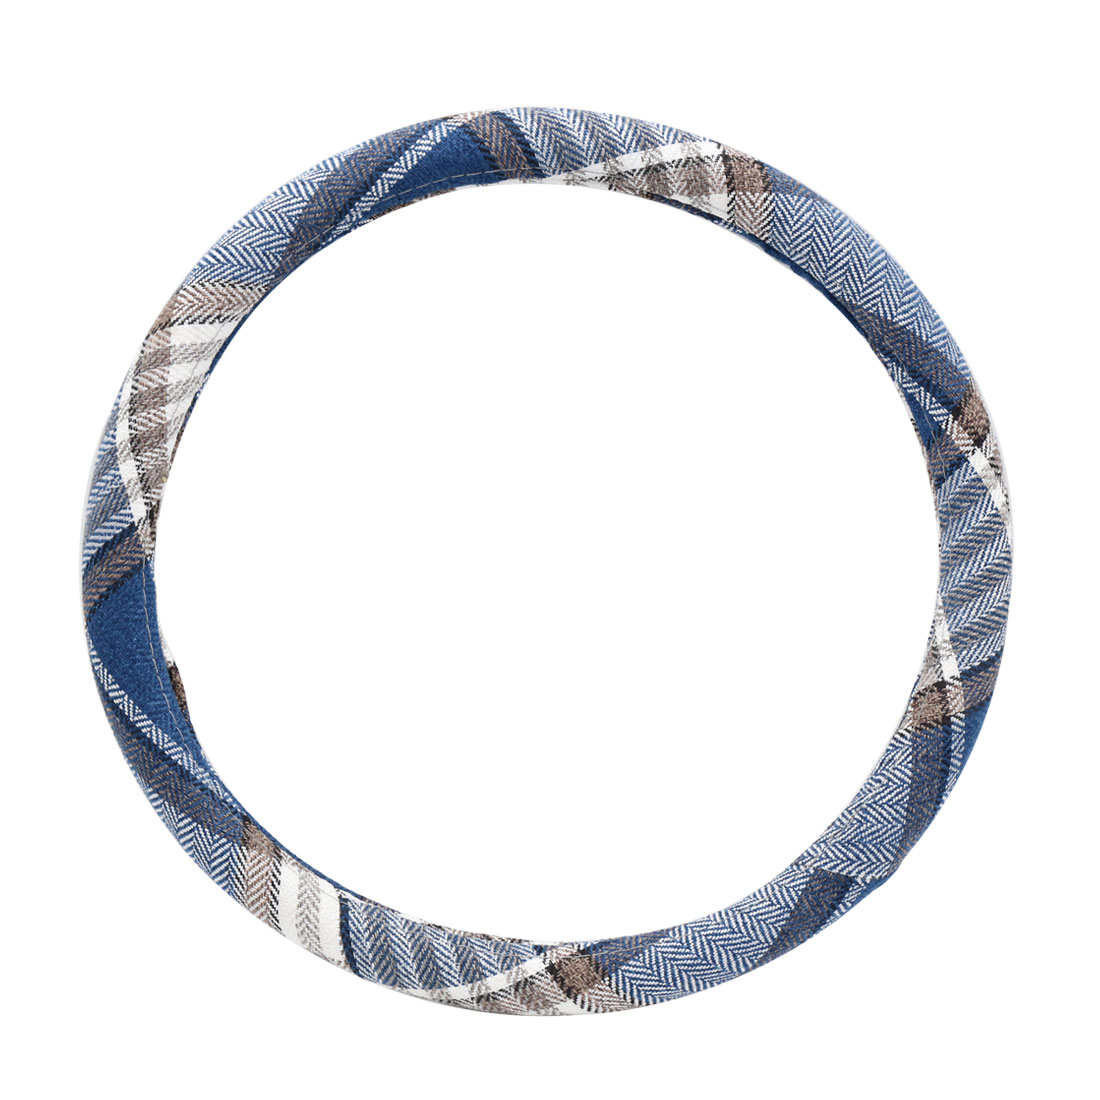 Blue Anti-skid Steering Wheel Cover Protector for Vehicle Car 39-40CM